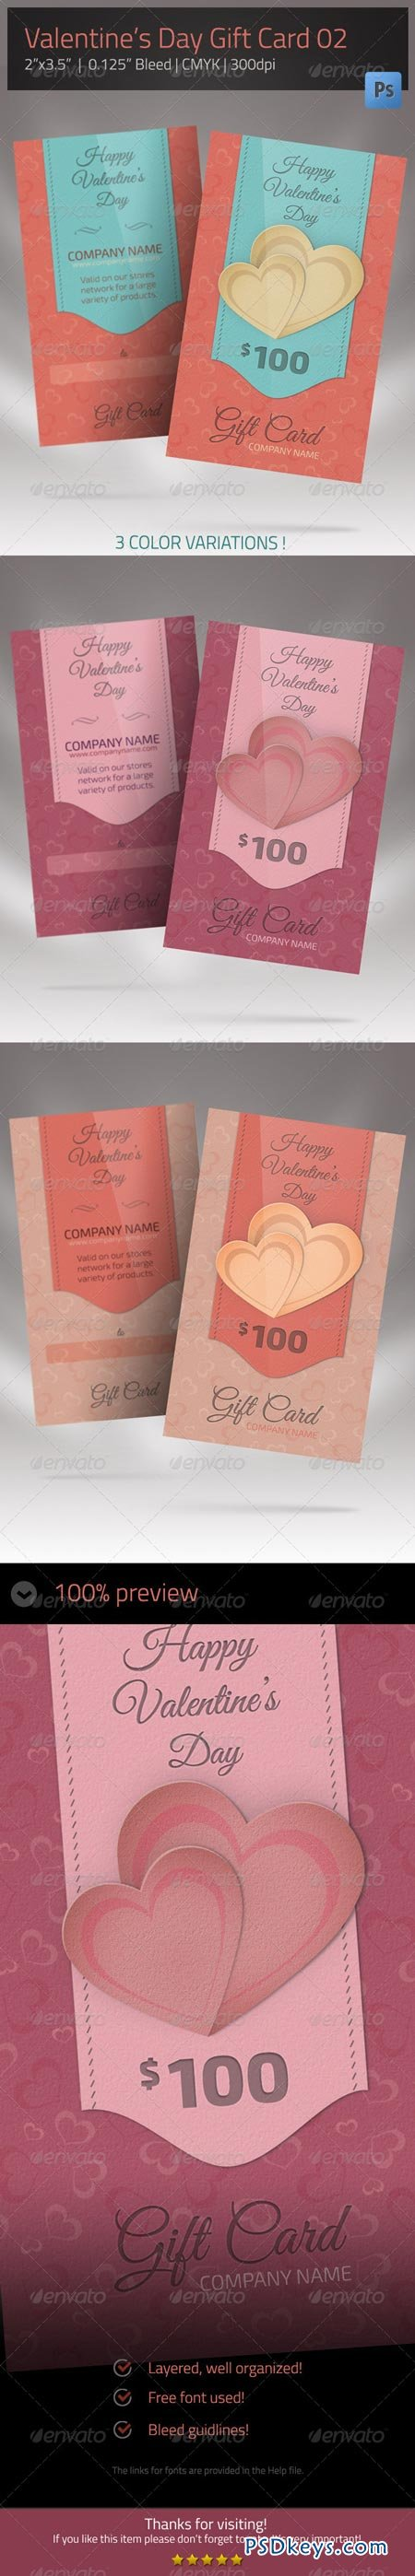 Gift Card for Valentines Day 02 6674189